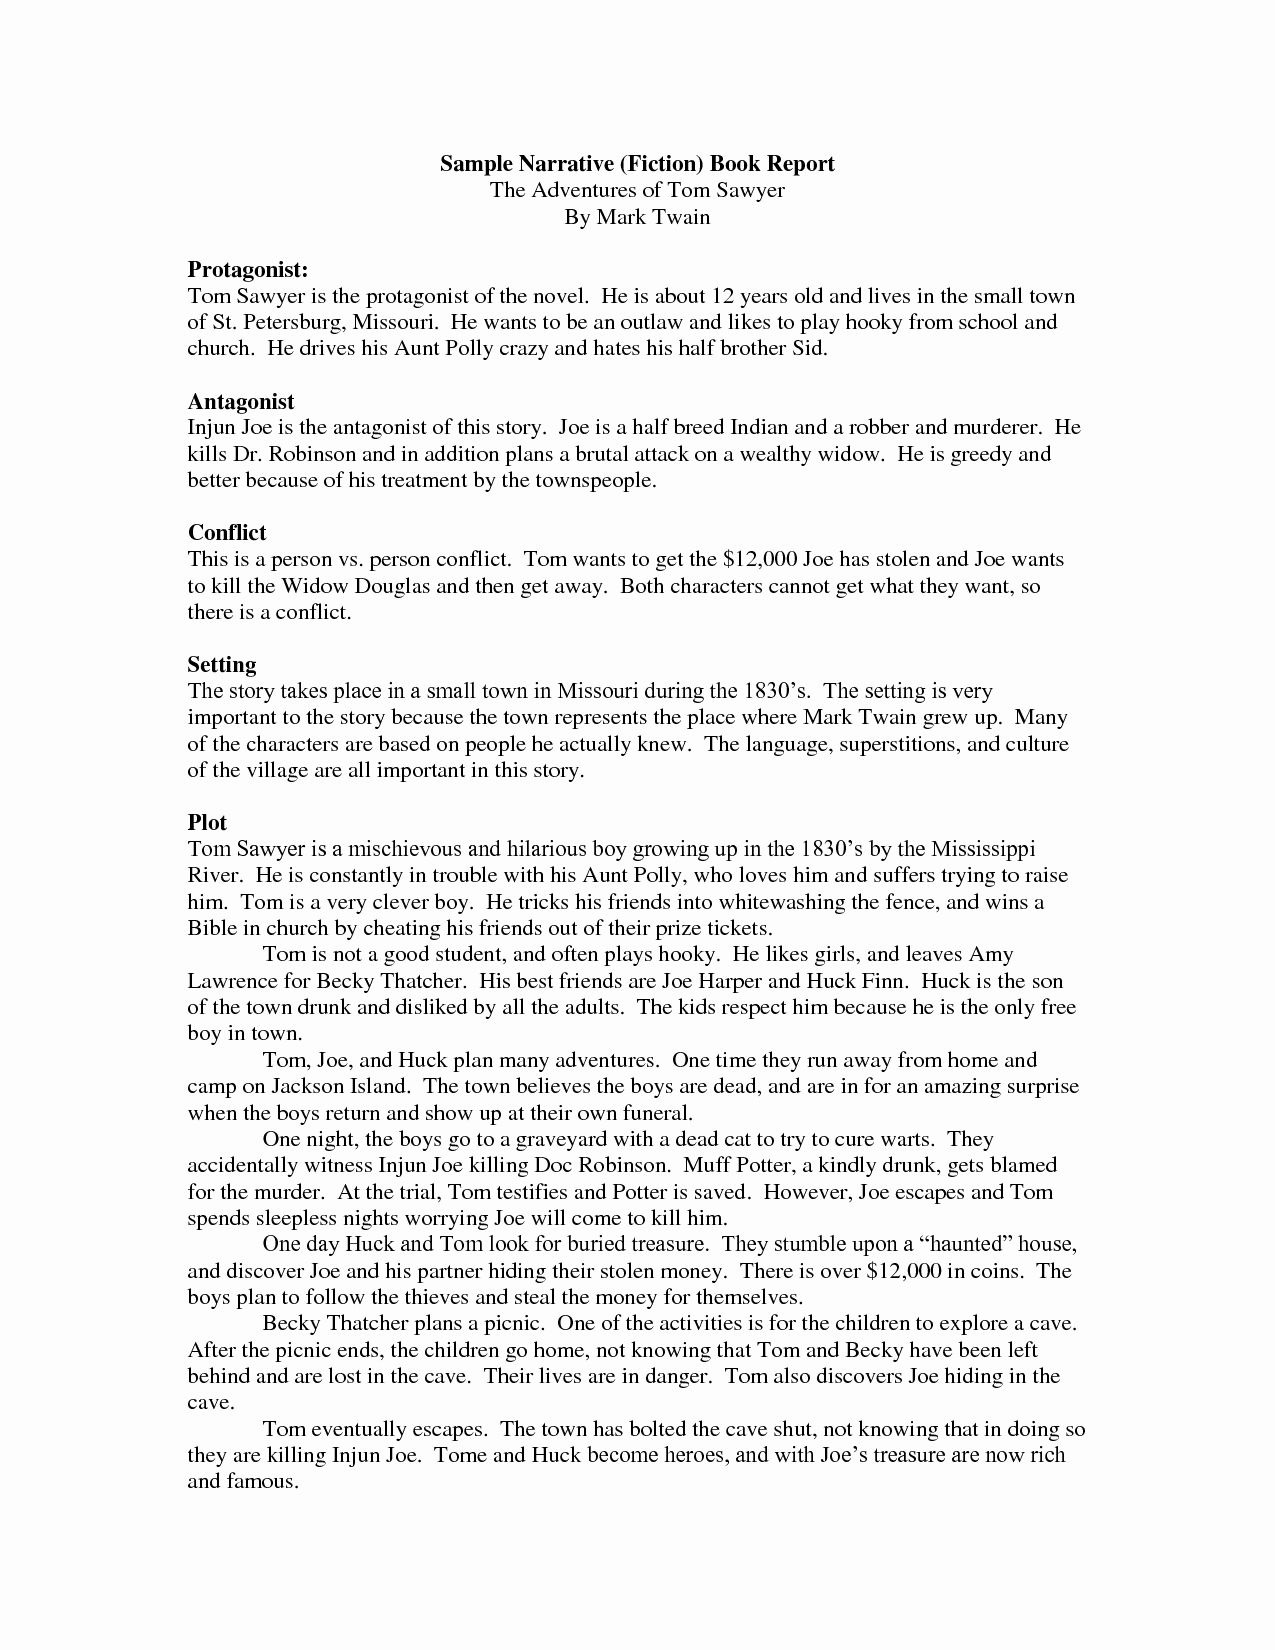 Book Analysis Format Sample In 2020 Letter Template Word Book